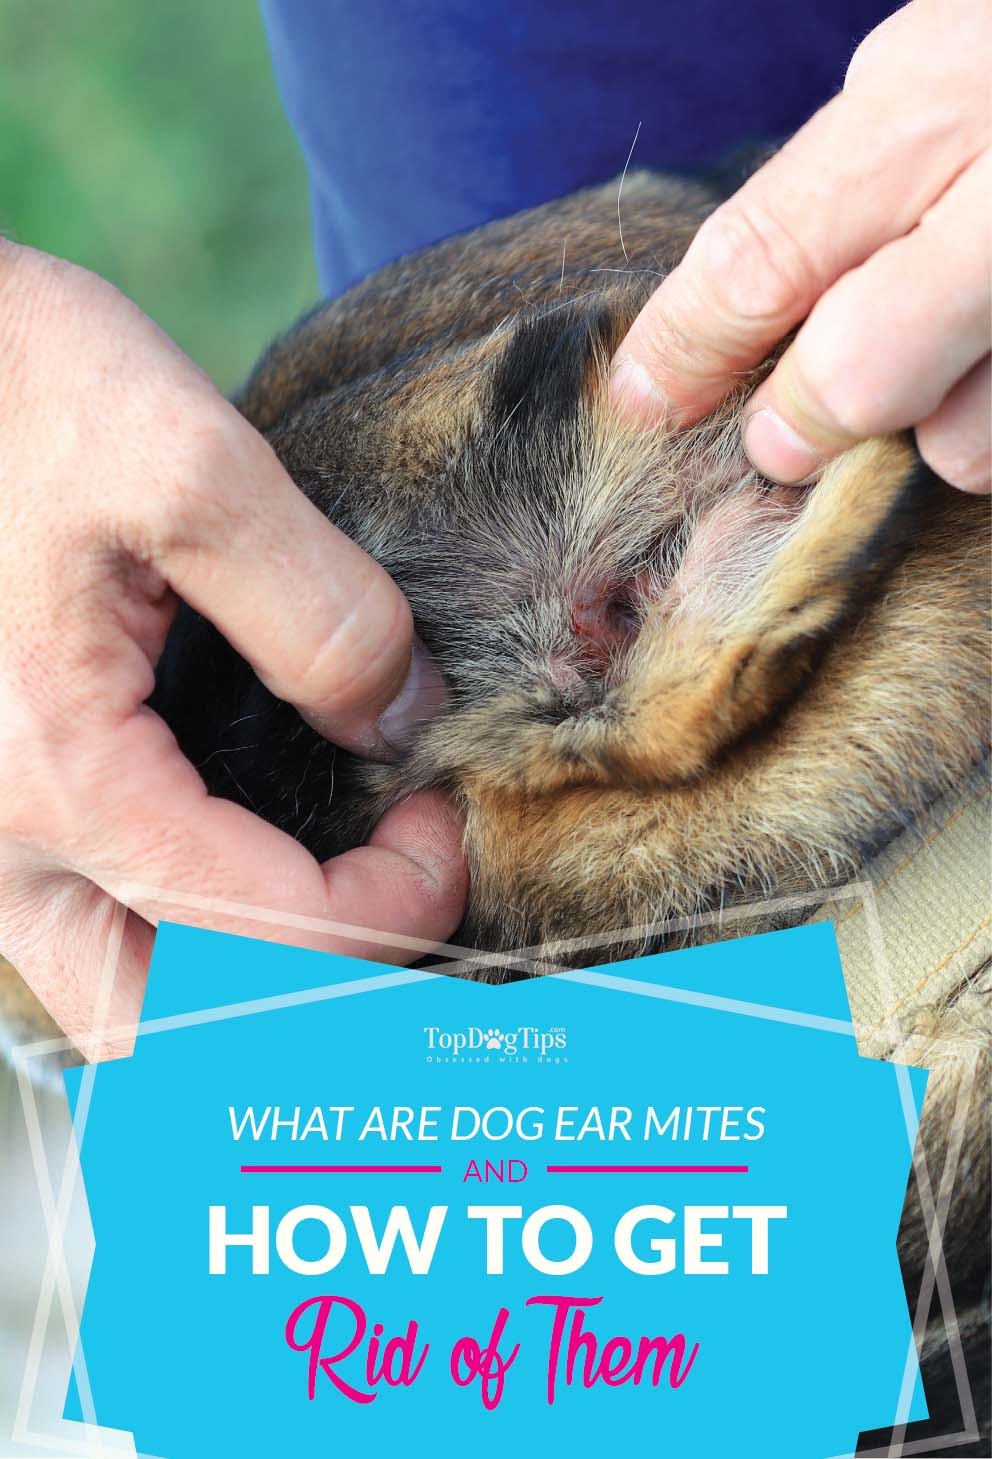 Other treatments for getting rid of mites on dogs include Benzoyl peroxide and injections of insecticides that can be done weekly. Treatment of Ticks on a Dog. Symptoms of mites in the dog's ears include itchy ears, head and ear shaking and a black substance looking like .